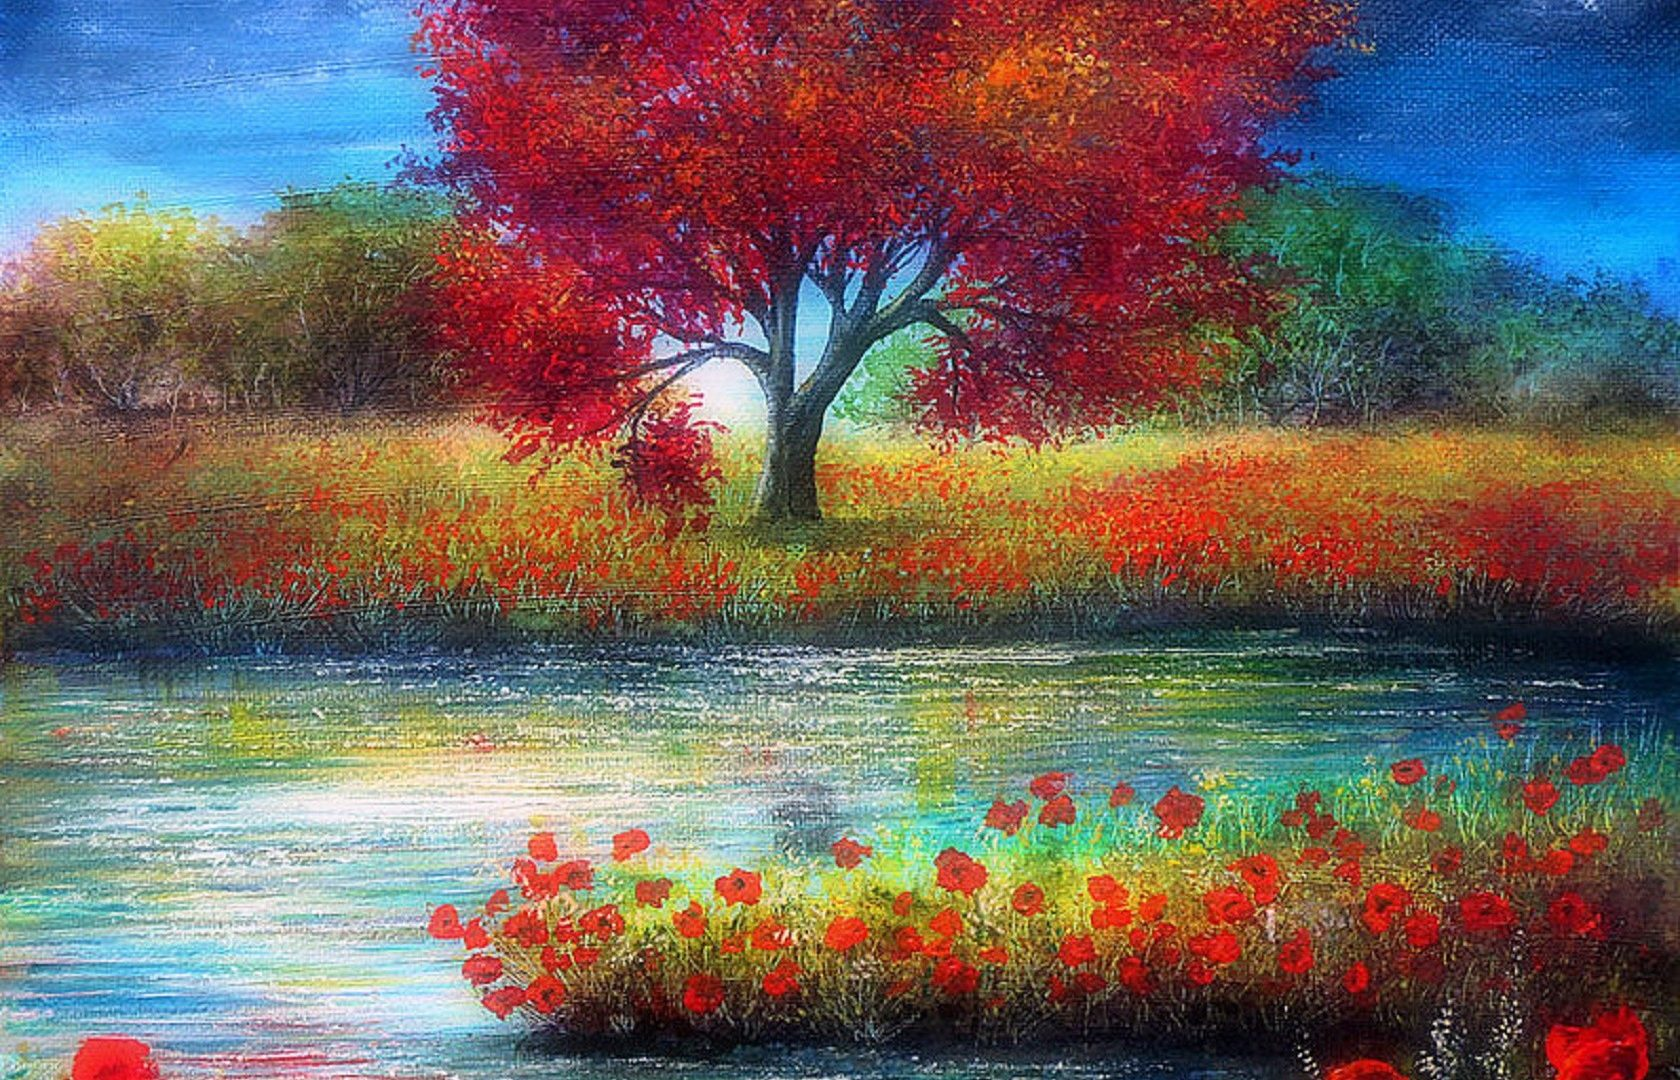 Drawn scenic spring scenery Page Colors Lovely Attractions Paintings